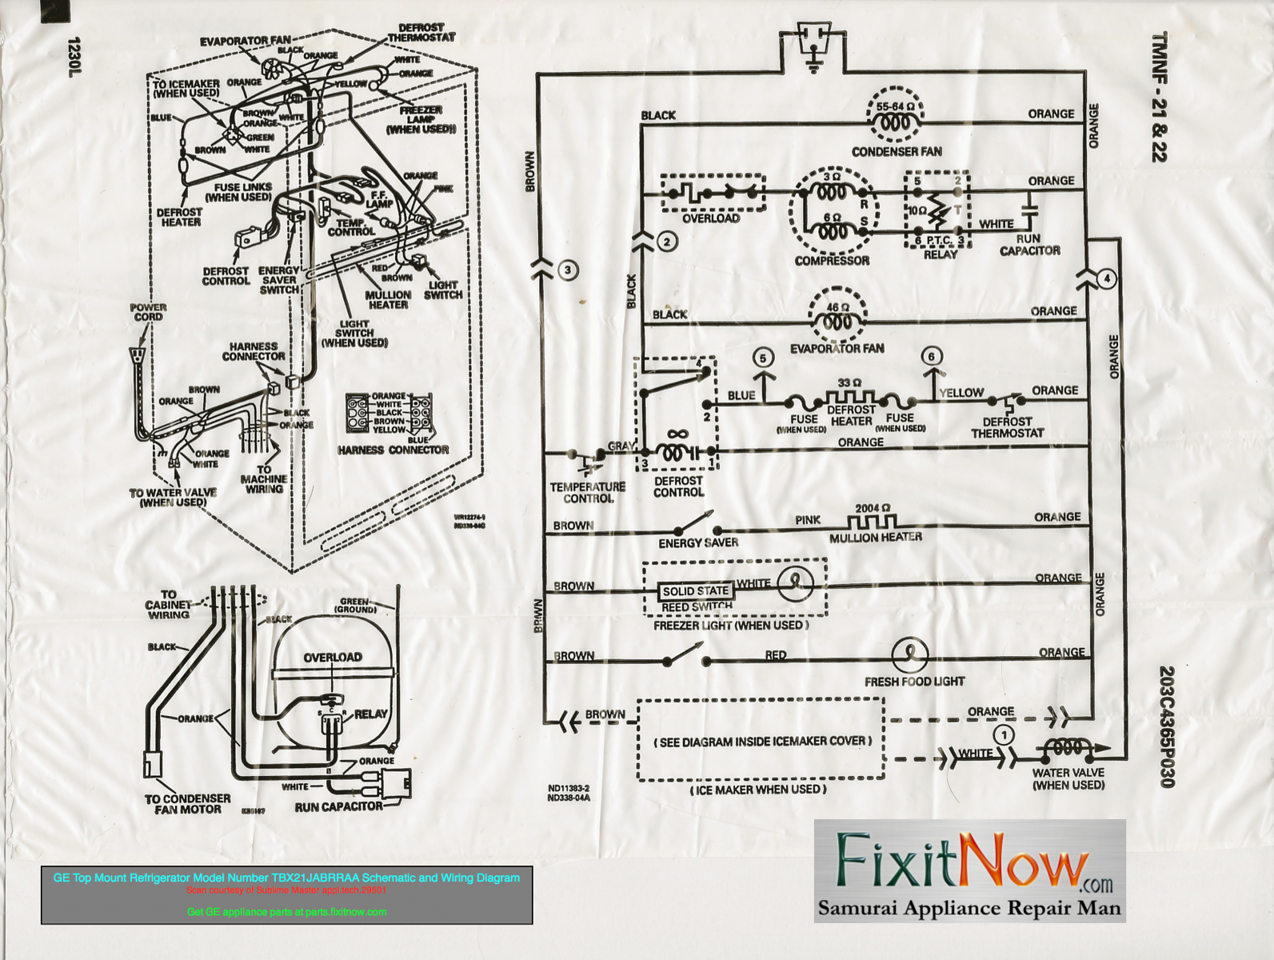 Compactor Wiring Diagram Library Jerr Dan Diagrams And Schematics Appliantology Cooktop Cabinet Admiral